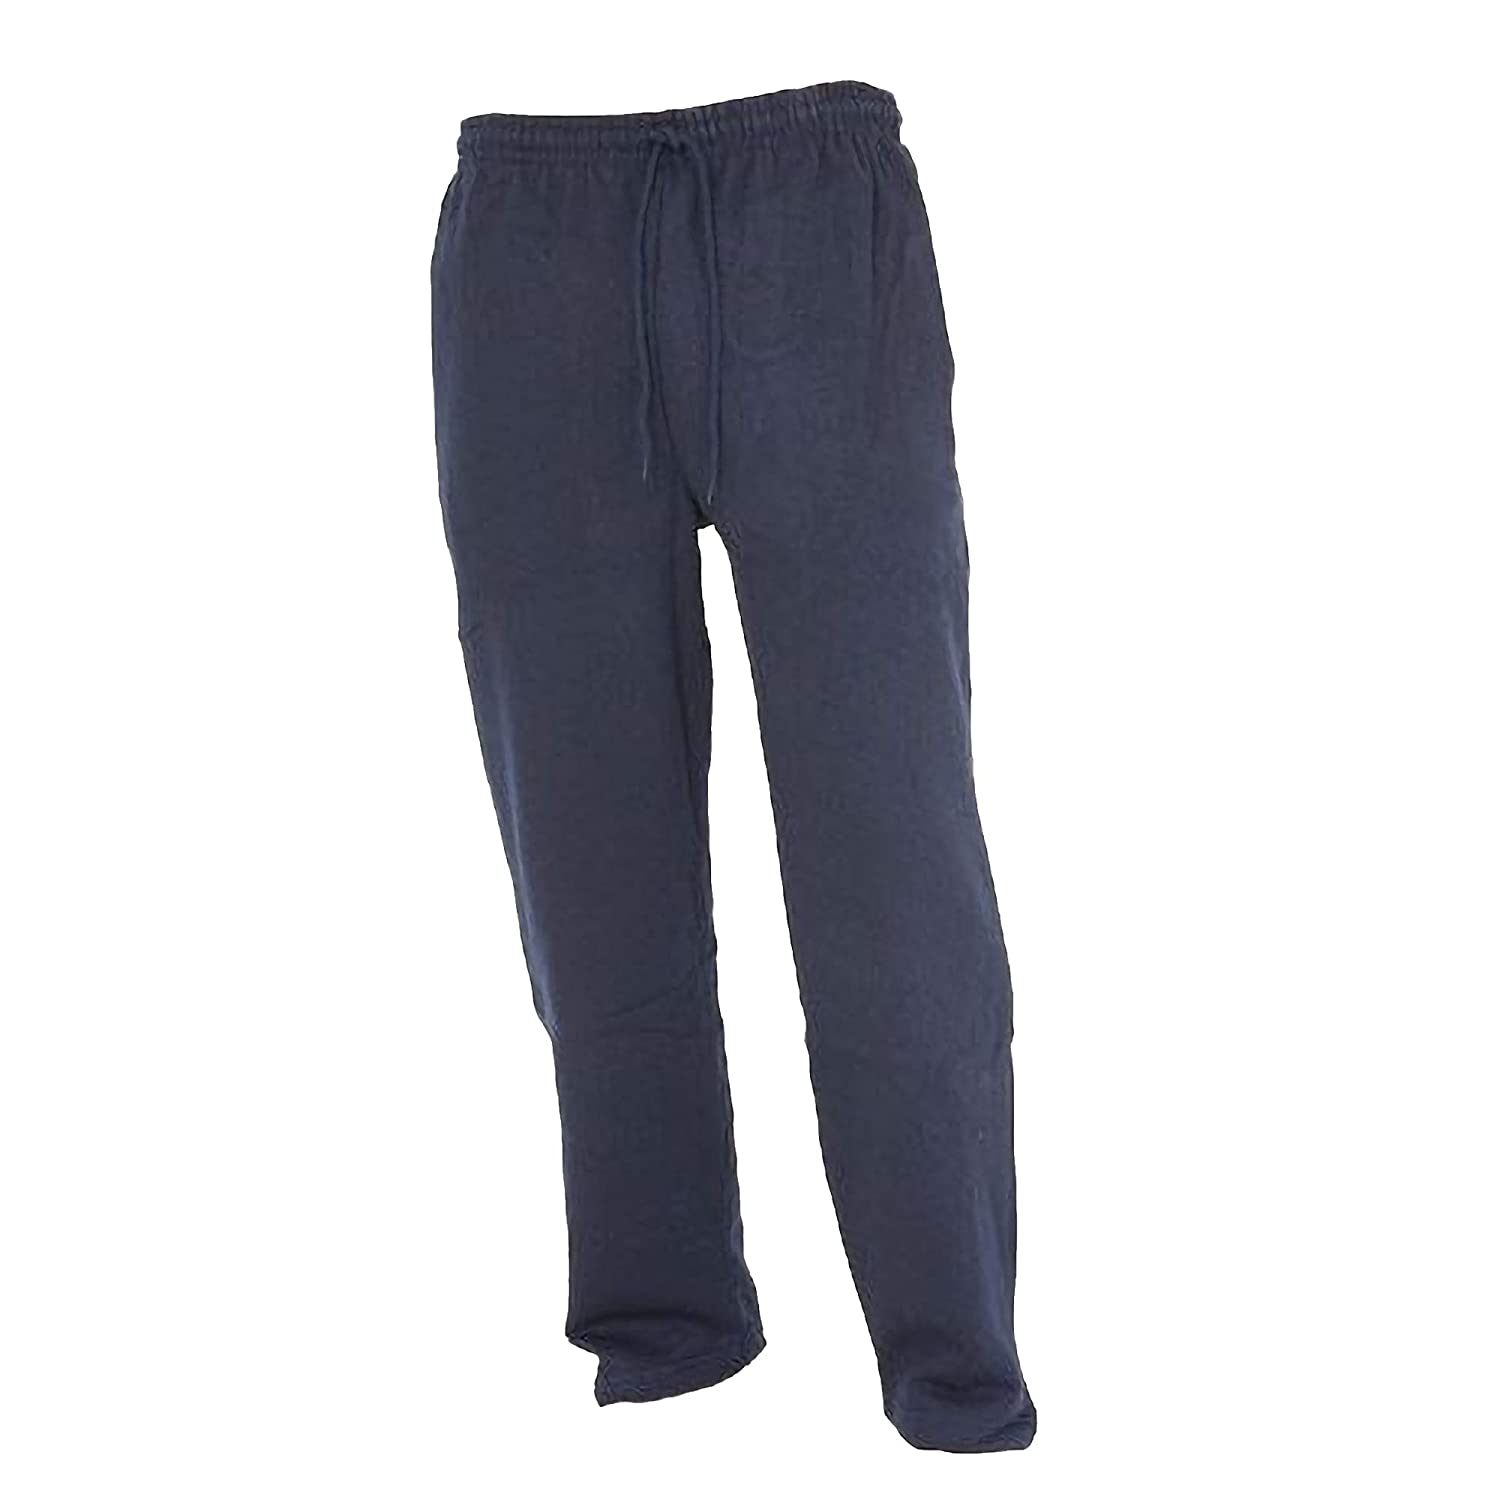 Floso Kids Little Boys Jogging Bottoms//Pants//School Wear Range Open Cuff